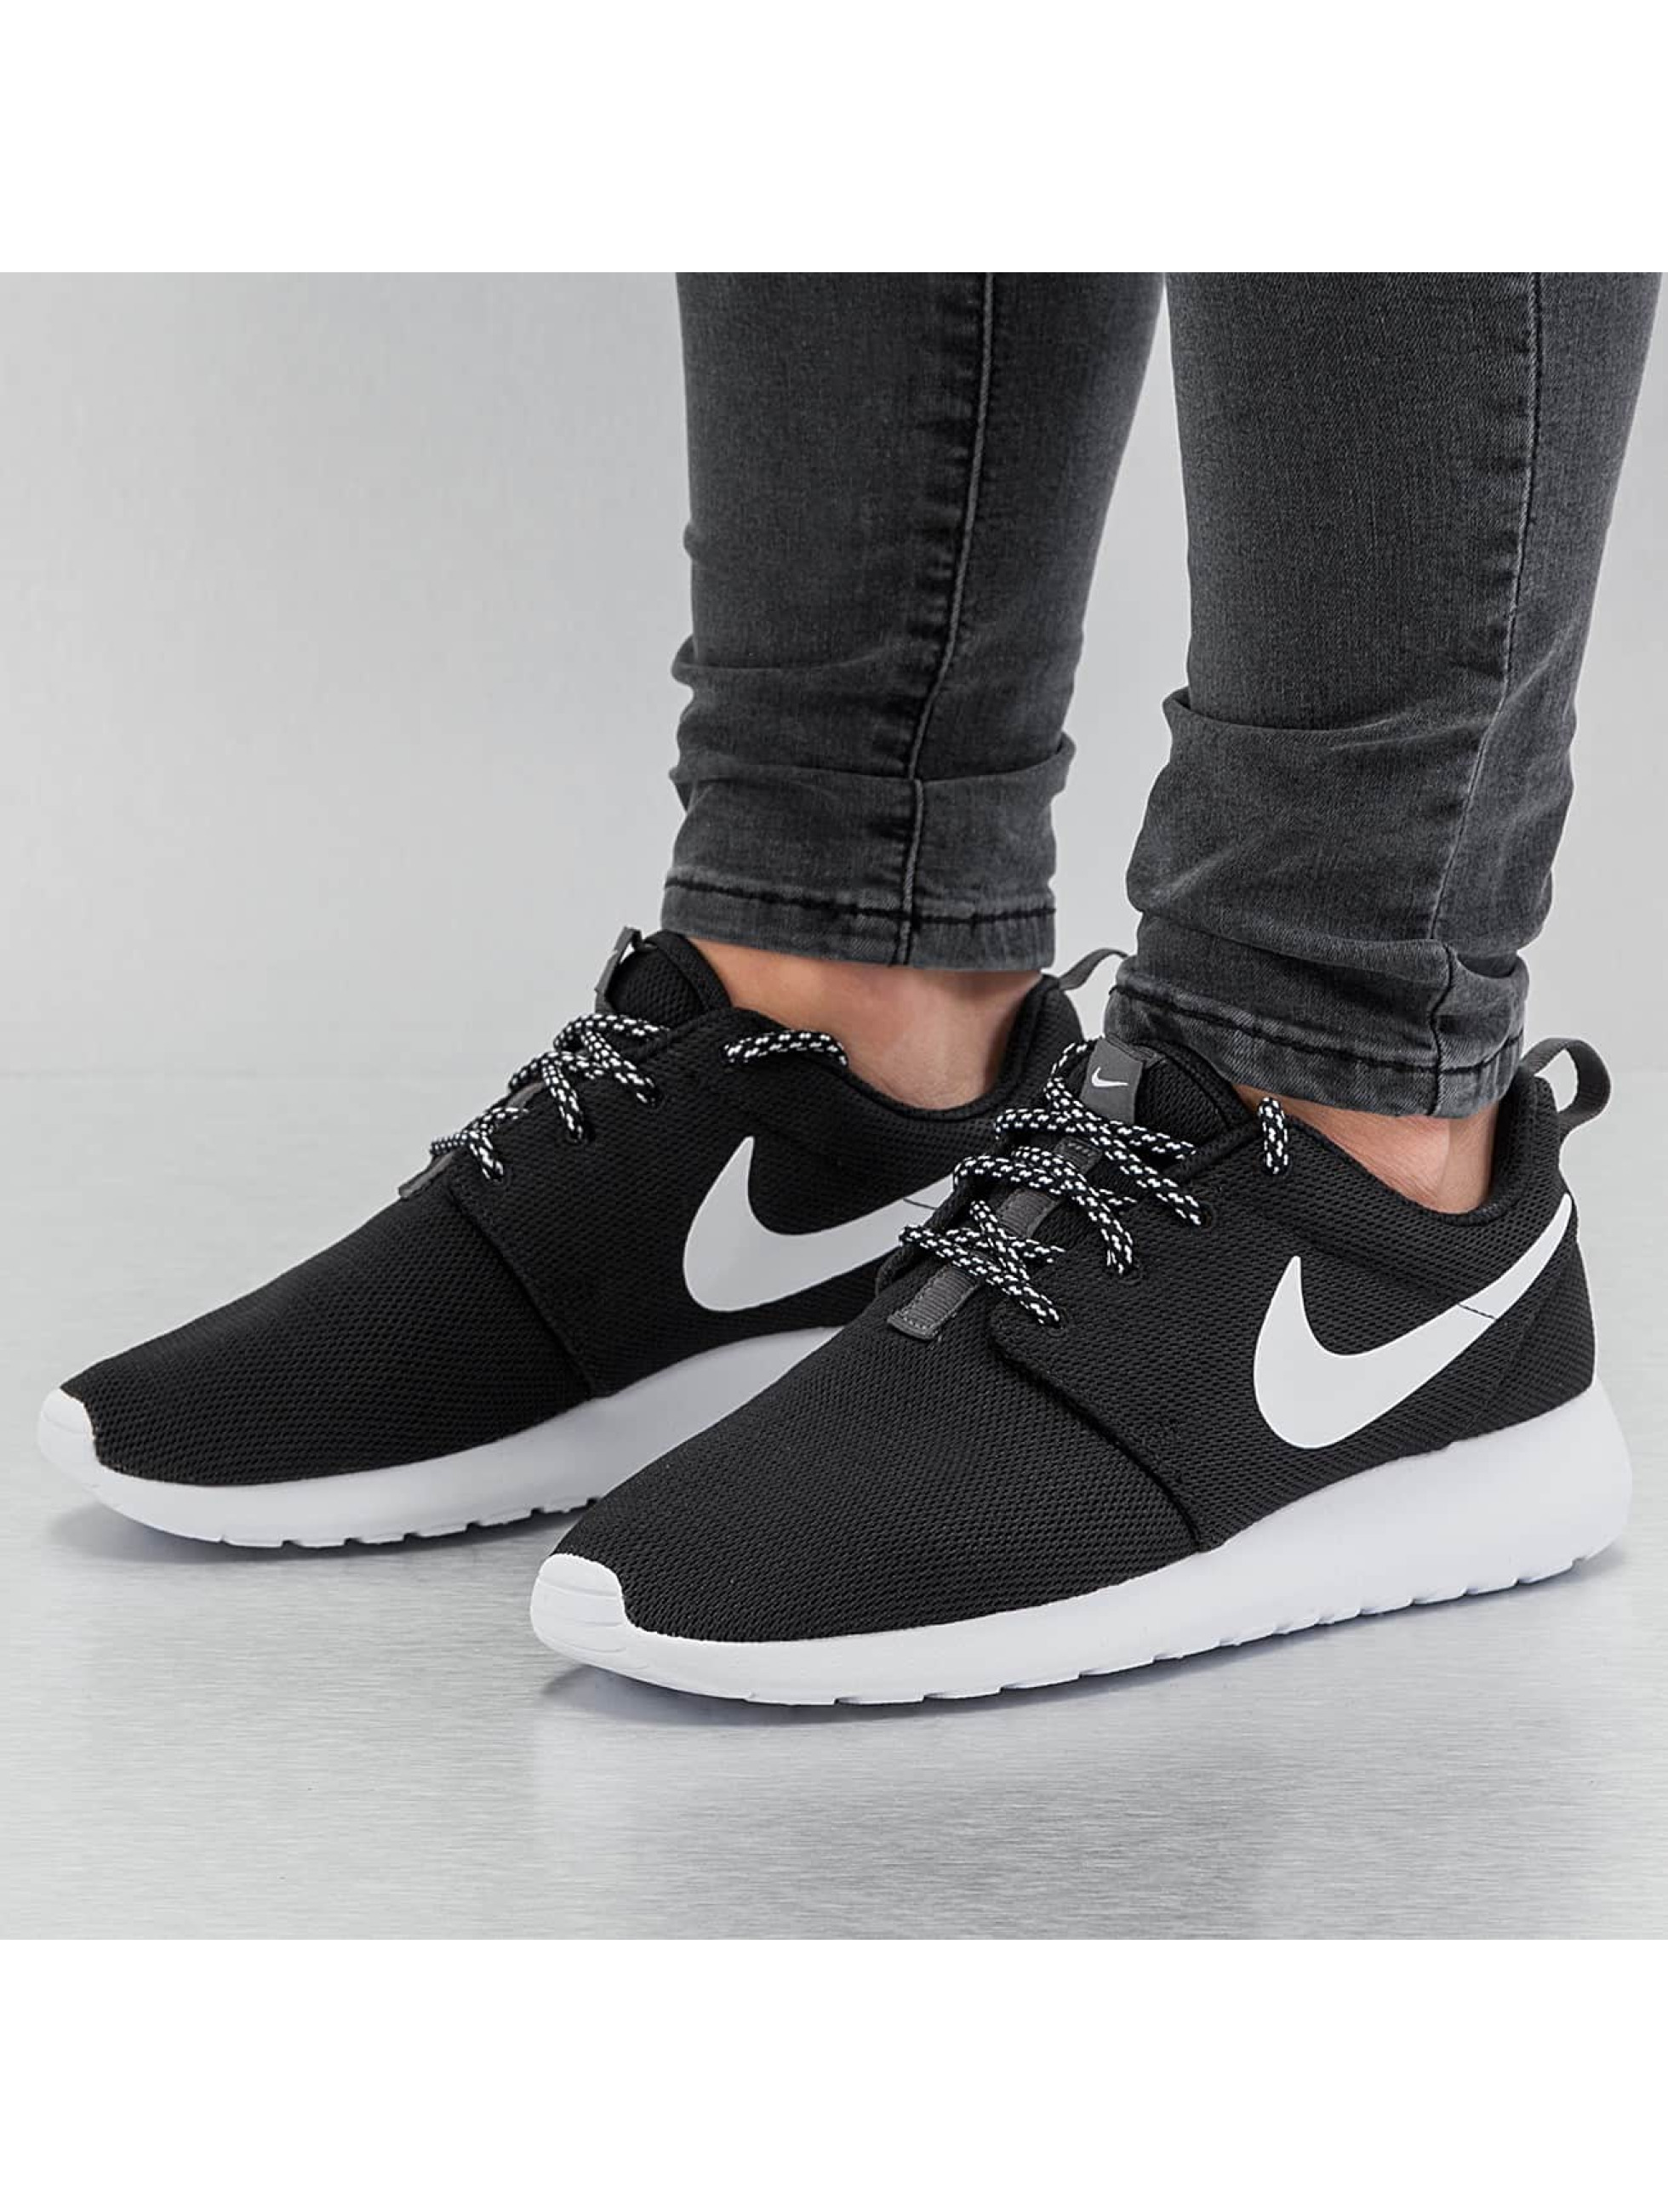 Sneaker Roshe One in schwarz